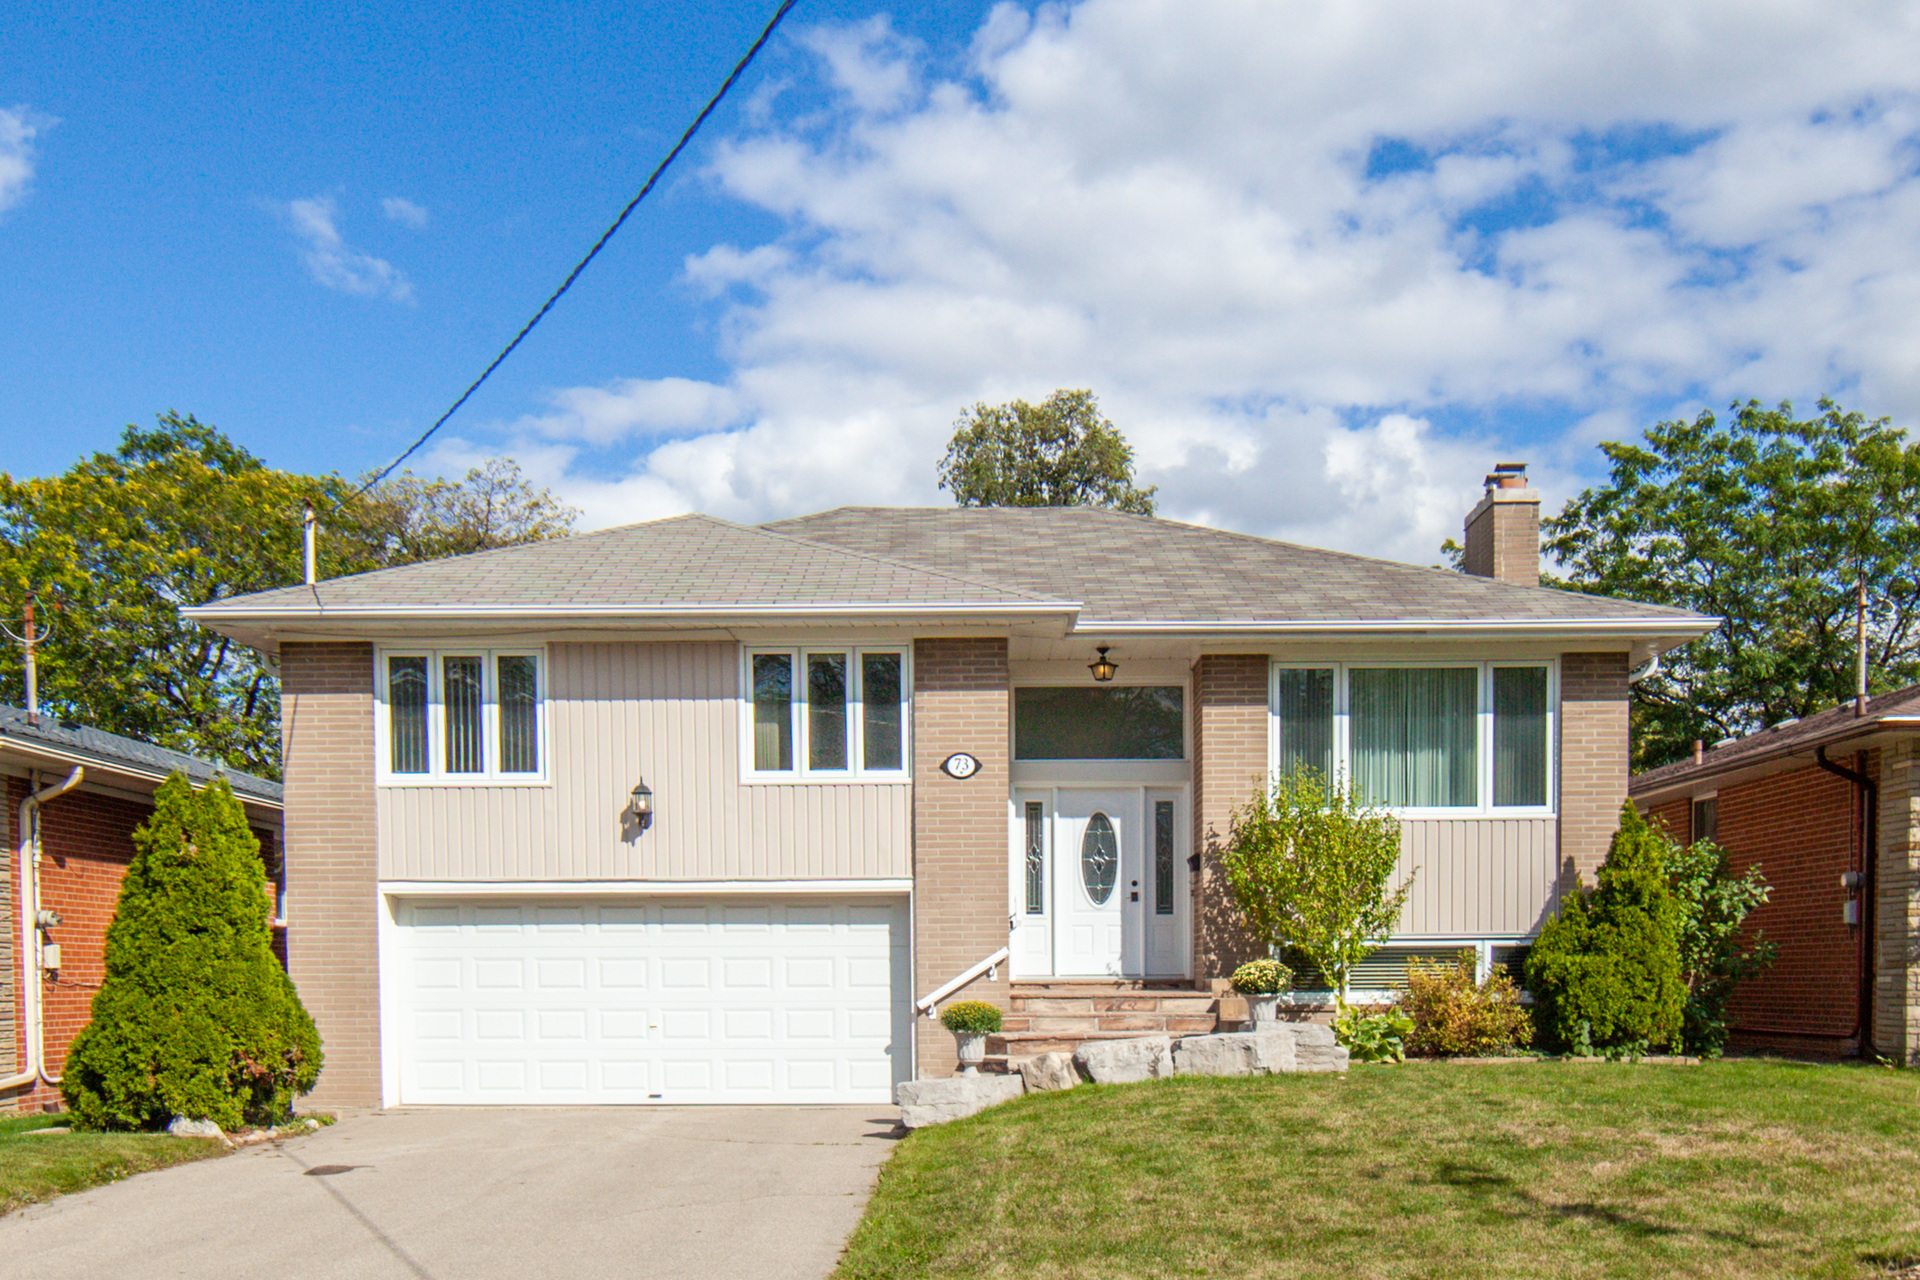 73 Heathview Avenue, Bayview Village, Toronto 2